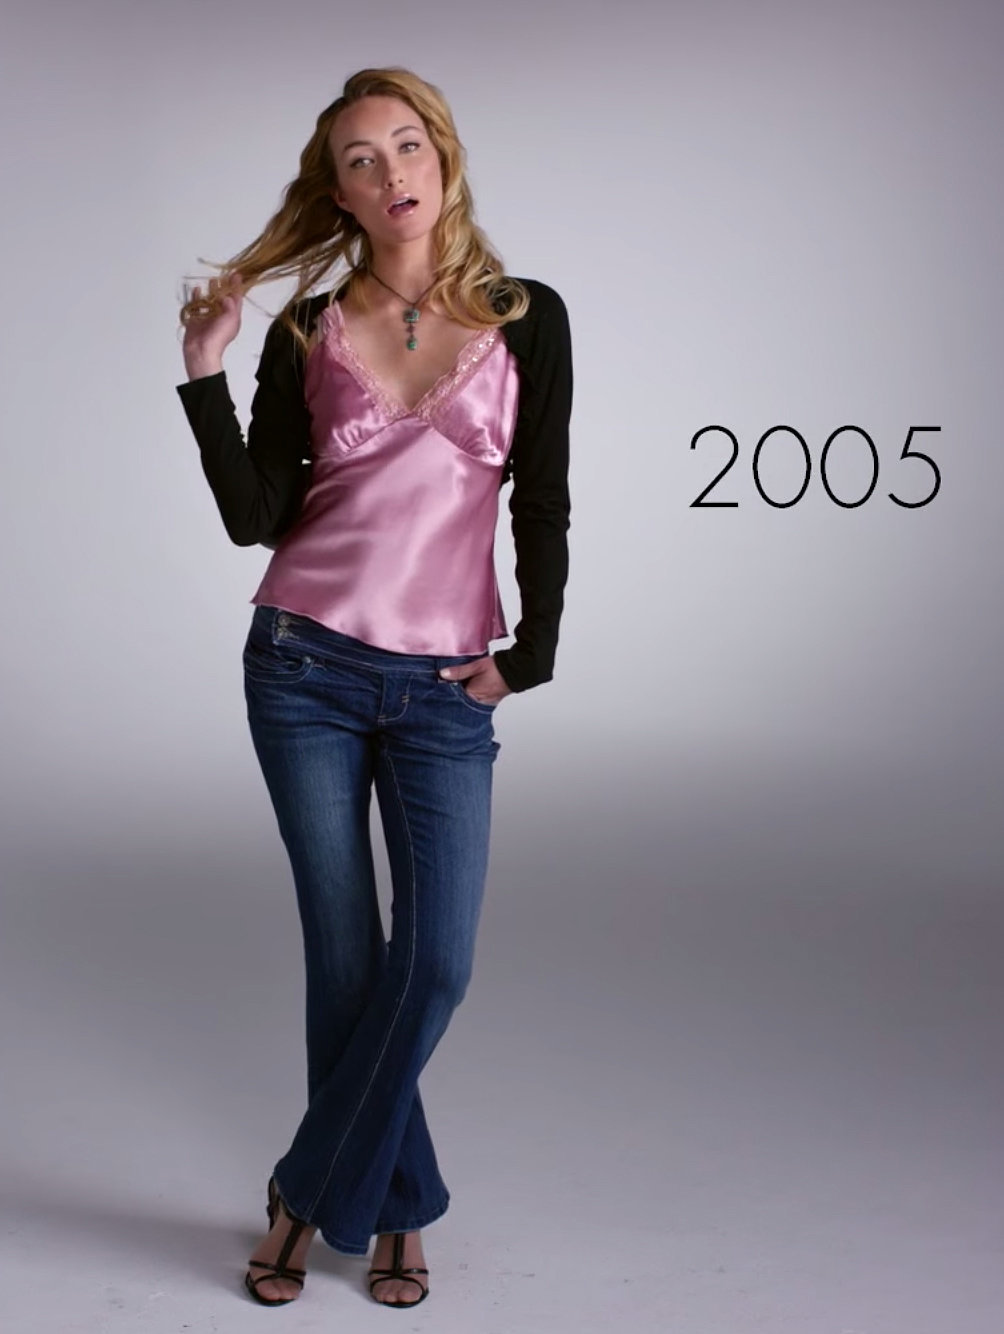 2005 | Watch 1 Woman Wear 100 Years of Fashion Trends in 2 ...